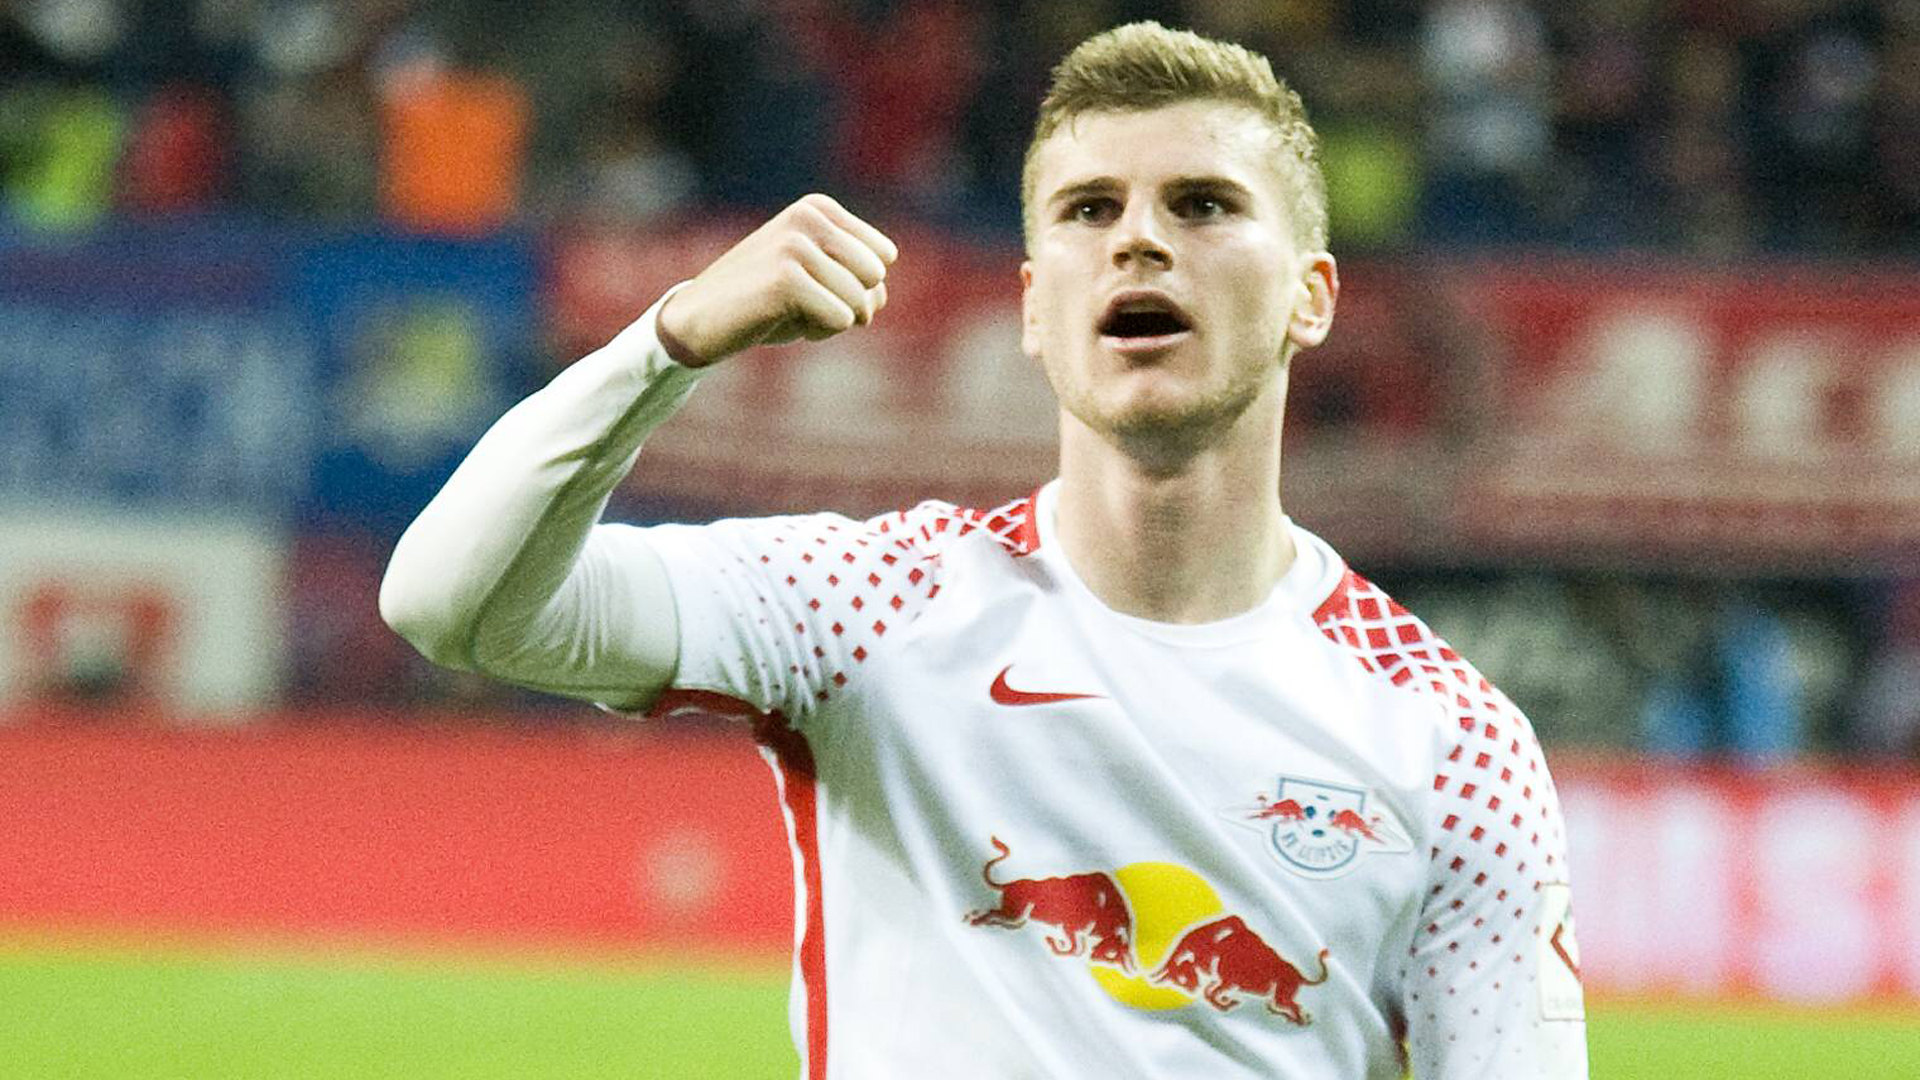 Cute Live Wallpaper For Mobile Free Download Timo Werner Wallpaper